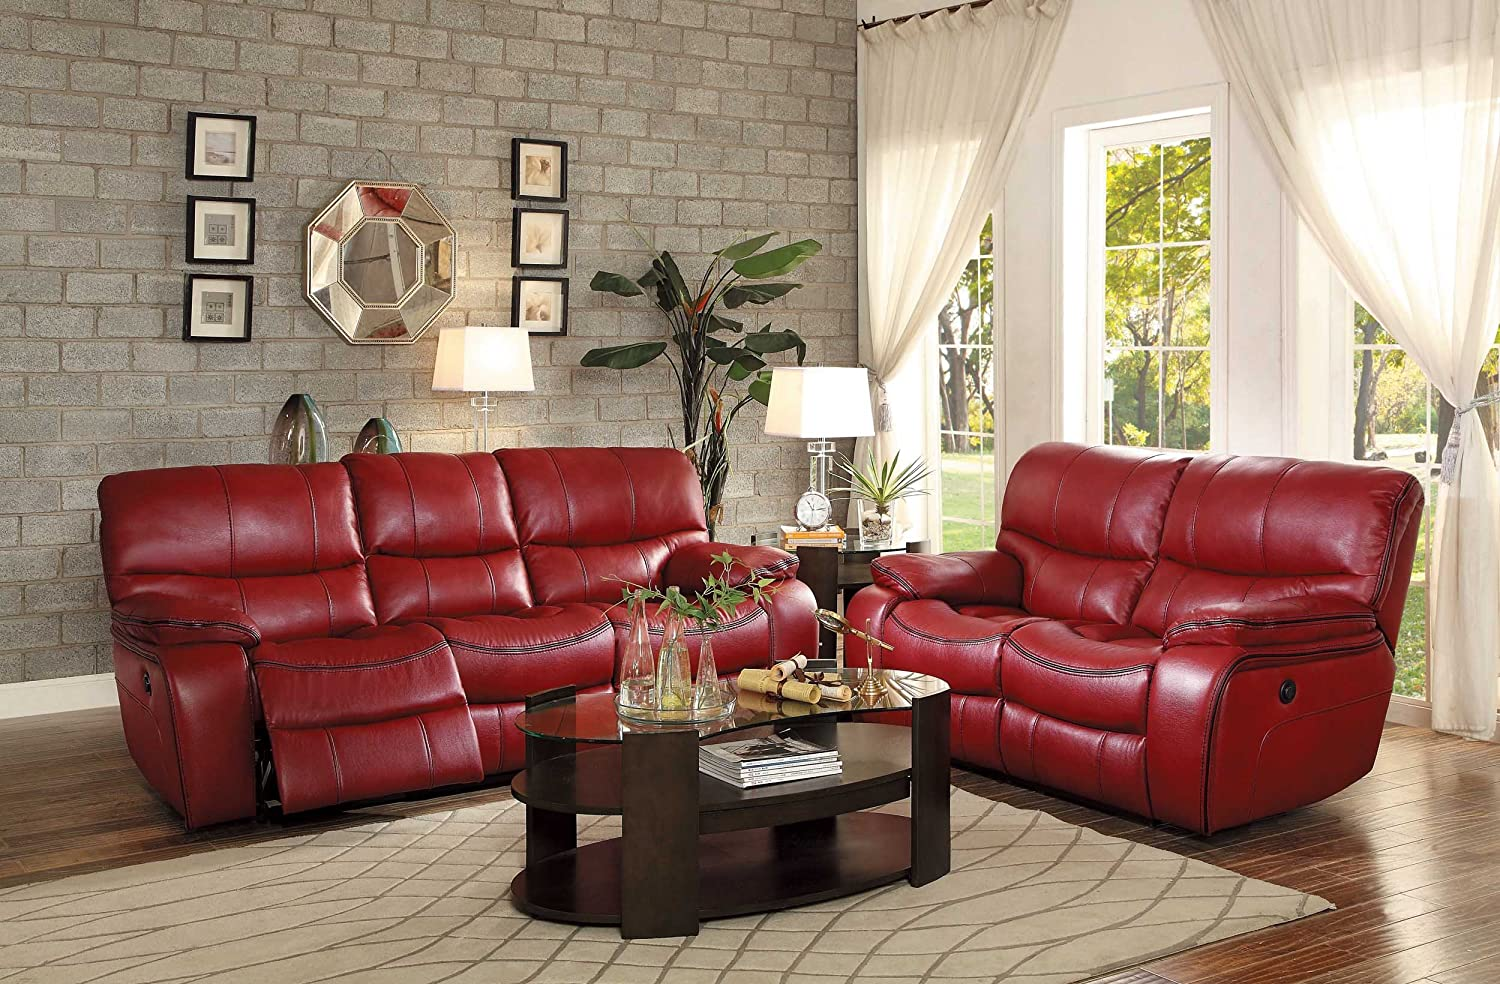 Amazon.com: Homelegance Pecos Modern Design Power Double Reclining Sofa  Leather Gel Match, Red: Kitchen U0026 Dining